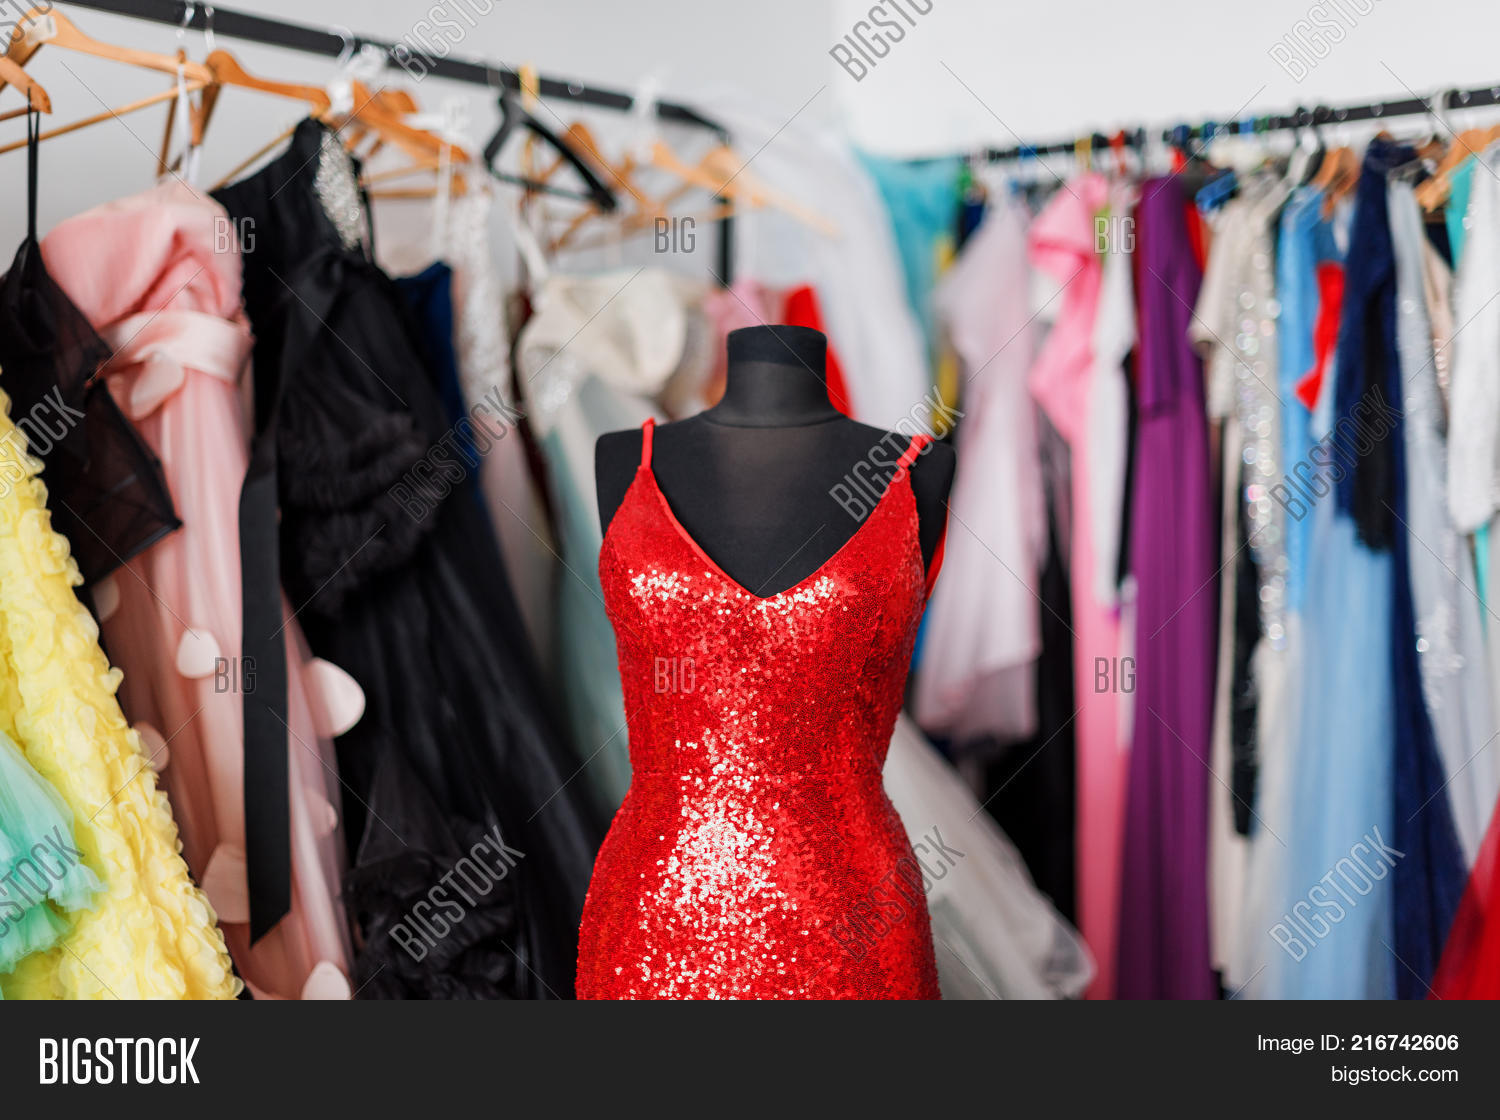 Many Ladies Evening Gown Long Image & Photo | Bigstock